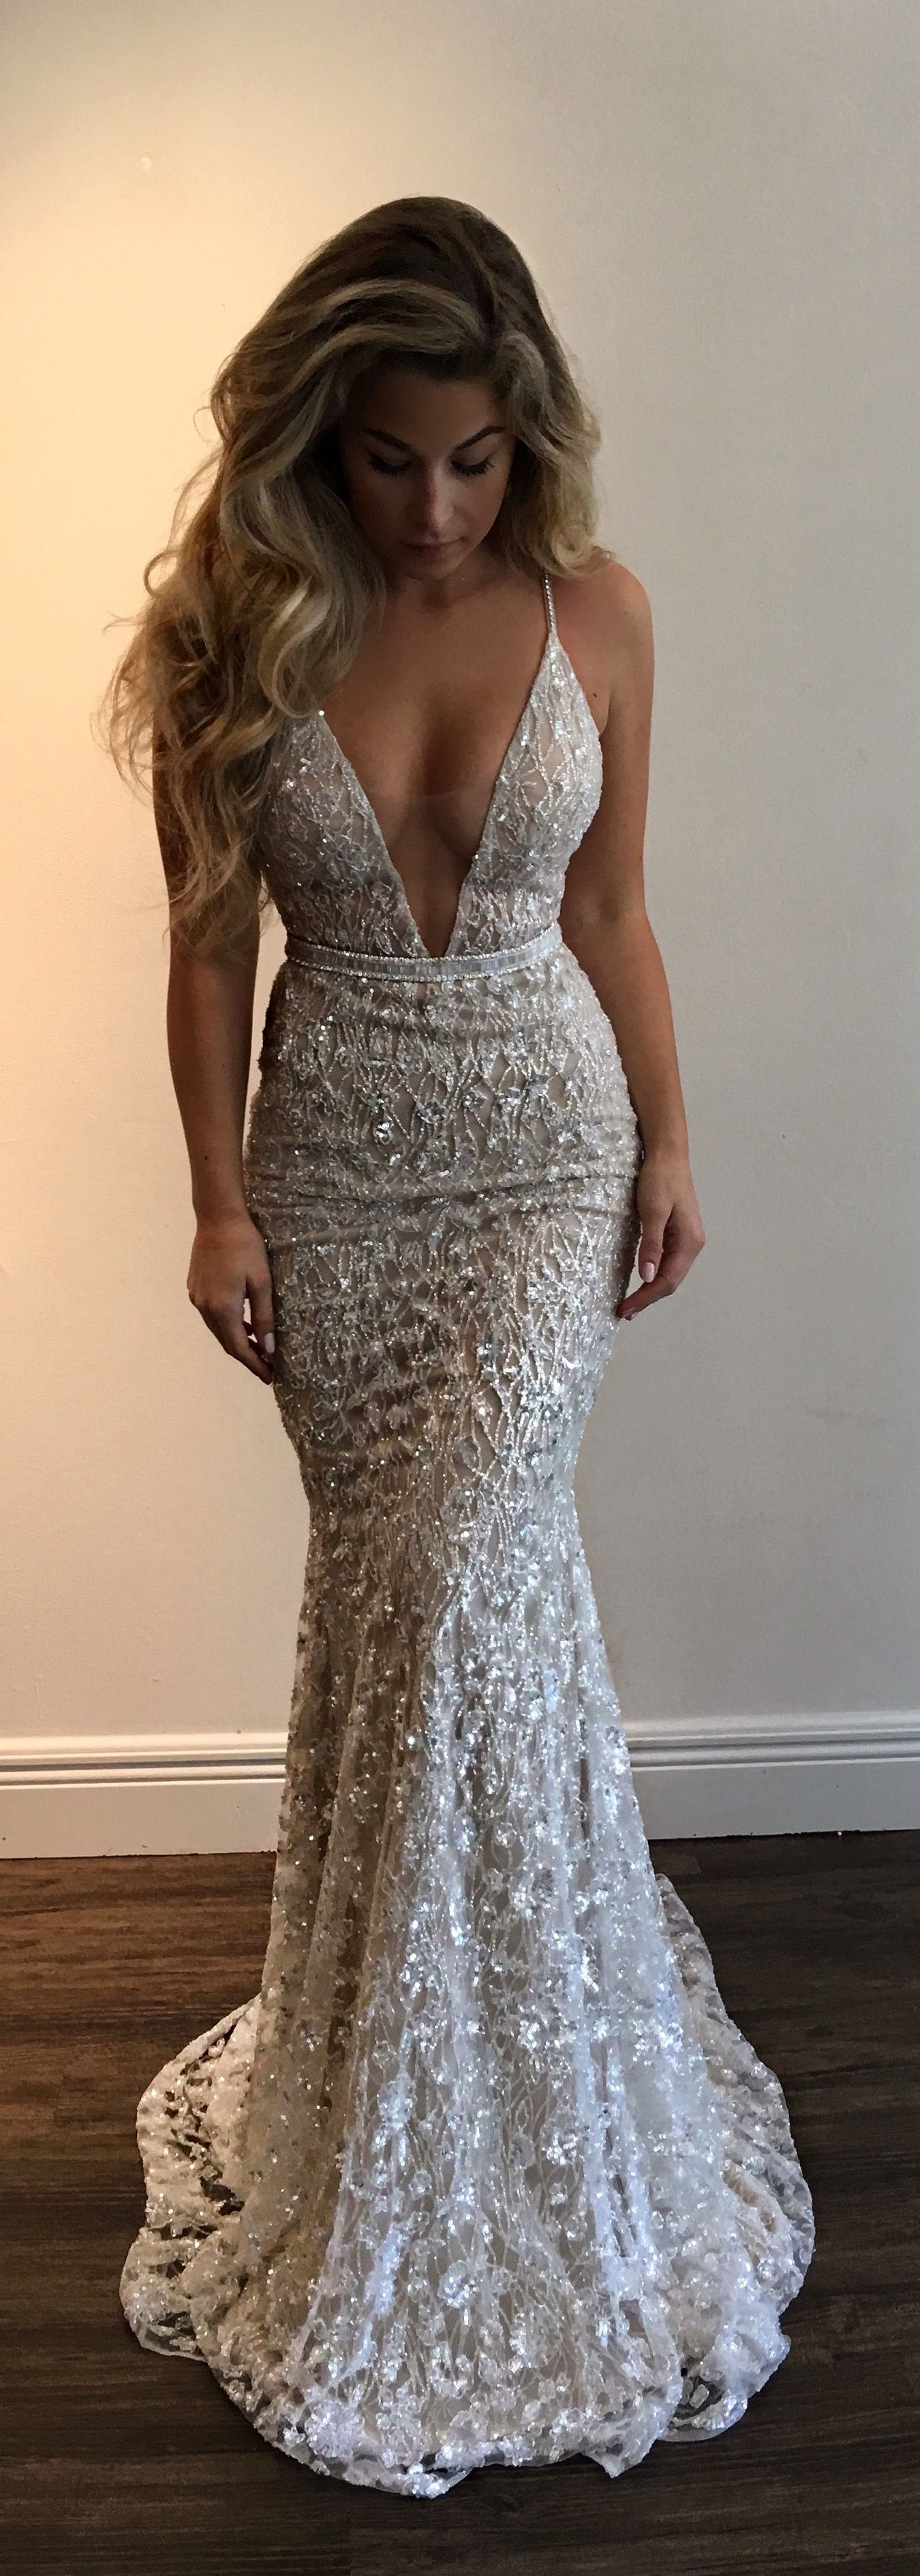 Pin by amber rose on dream wedding pinterest plunging neckline